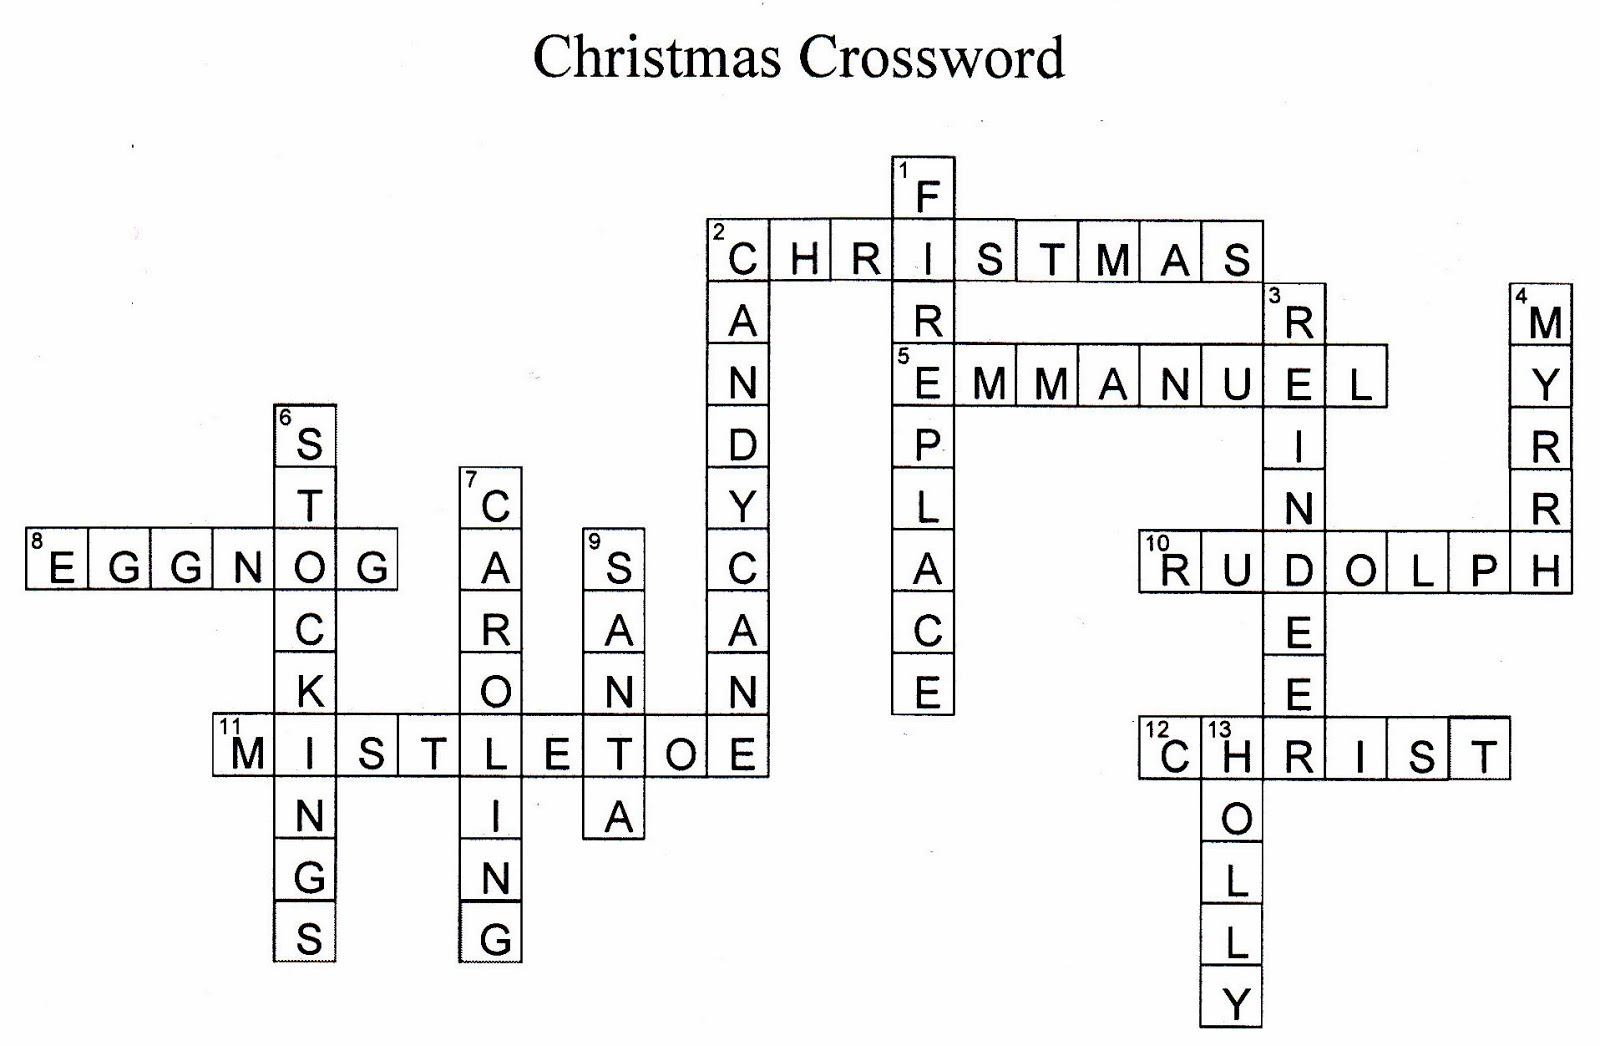 Charger Christmas Crossword Puzzle Answers